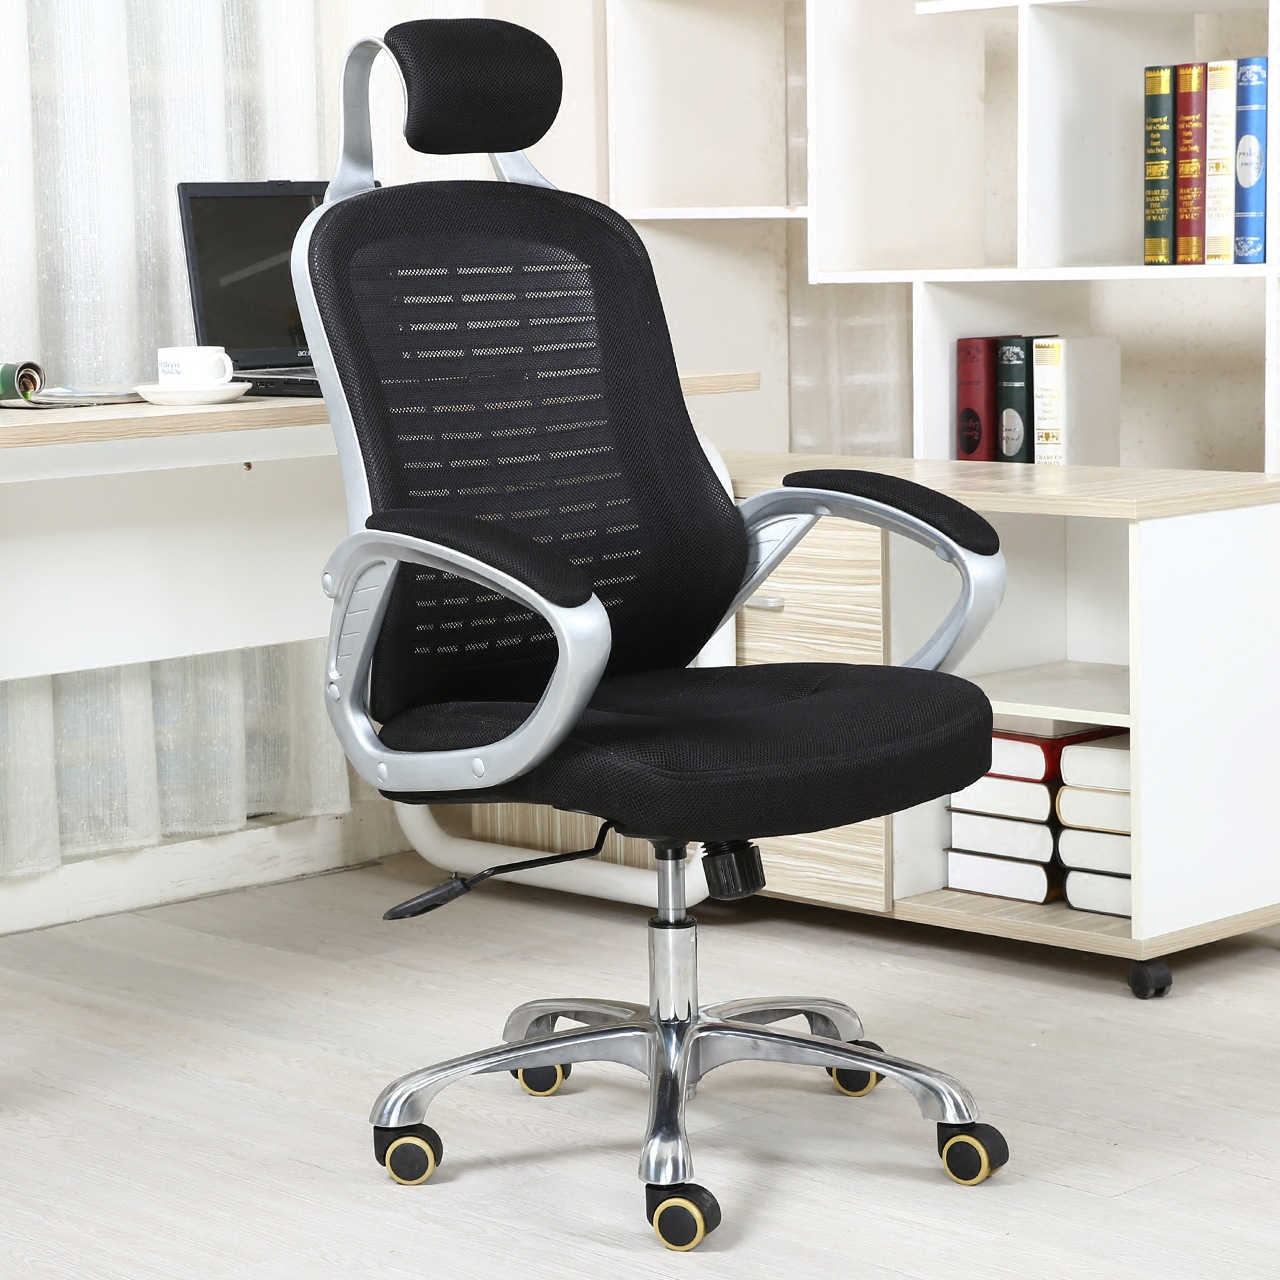 High Footstool Leisure Office Chair Fixing Prices According To Quality Of Products Iron Chair. Desk Chair